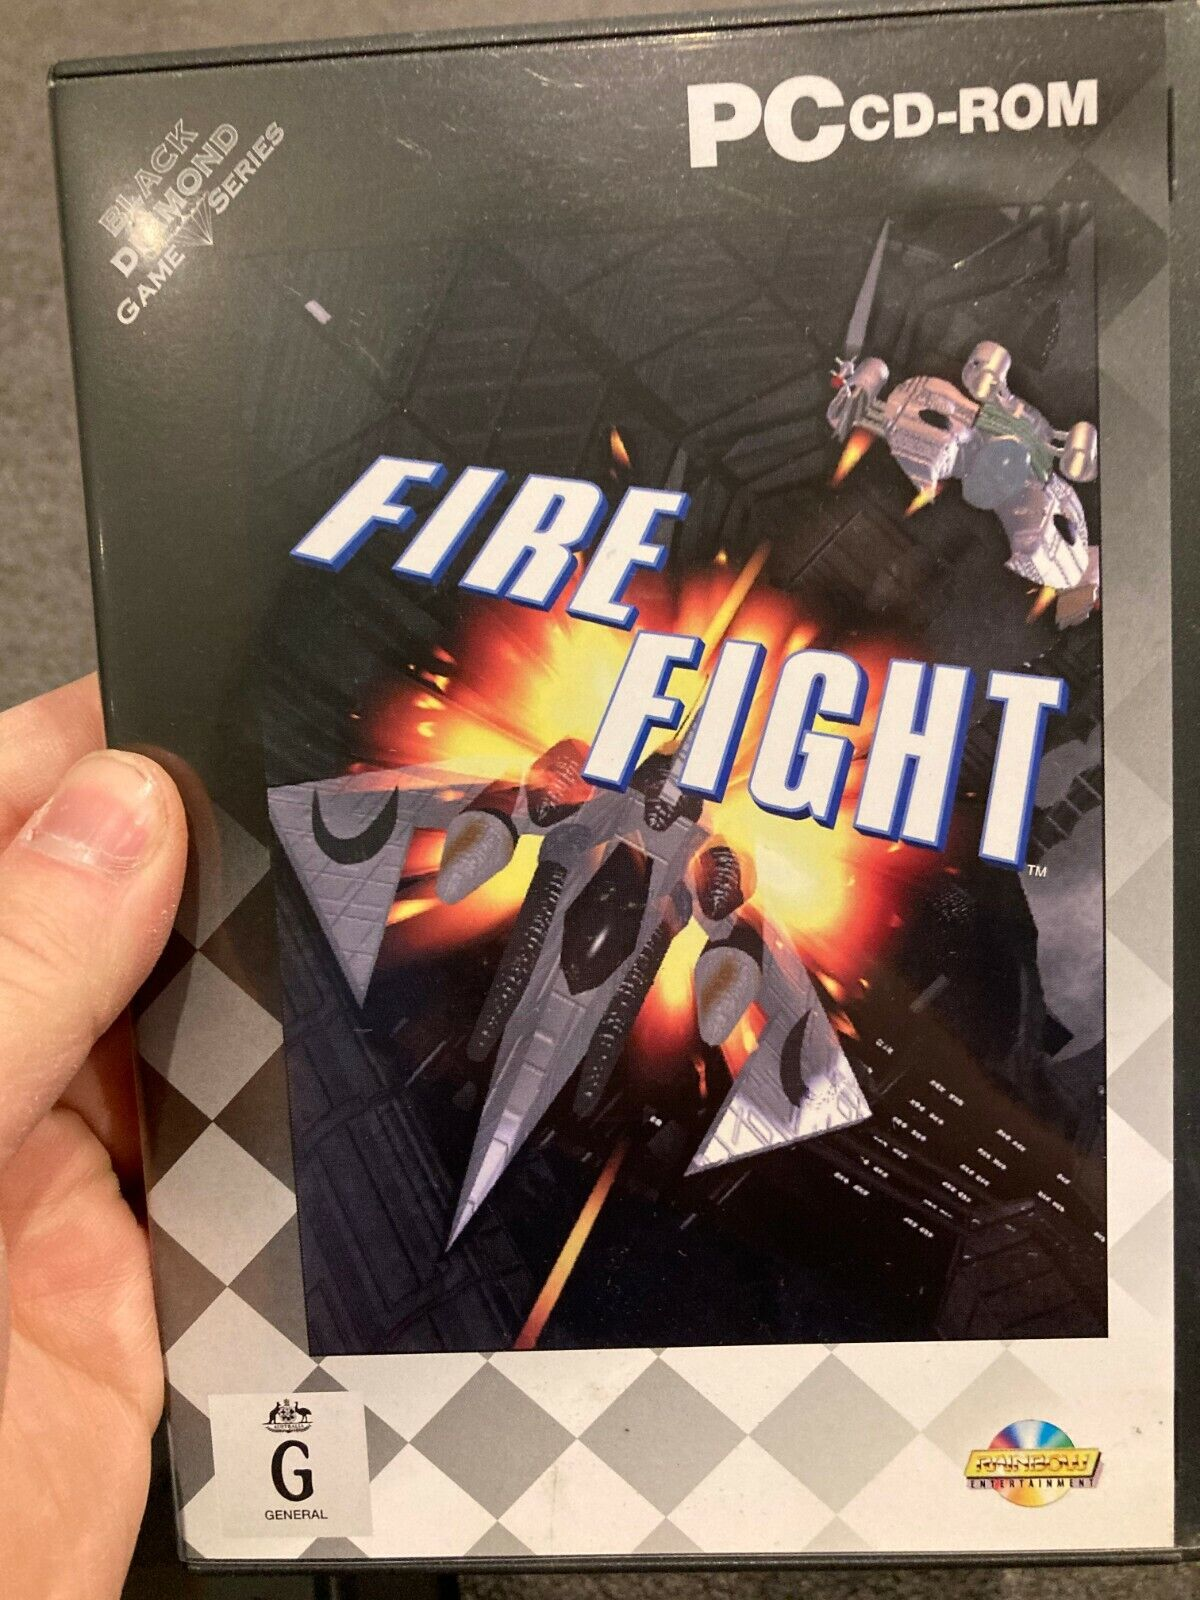 Computer Games - Fire Fight PC CD-ROM computer game